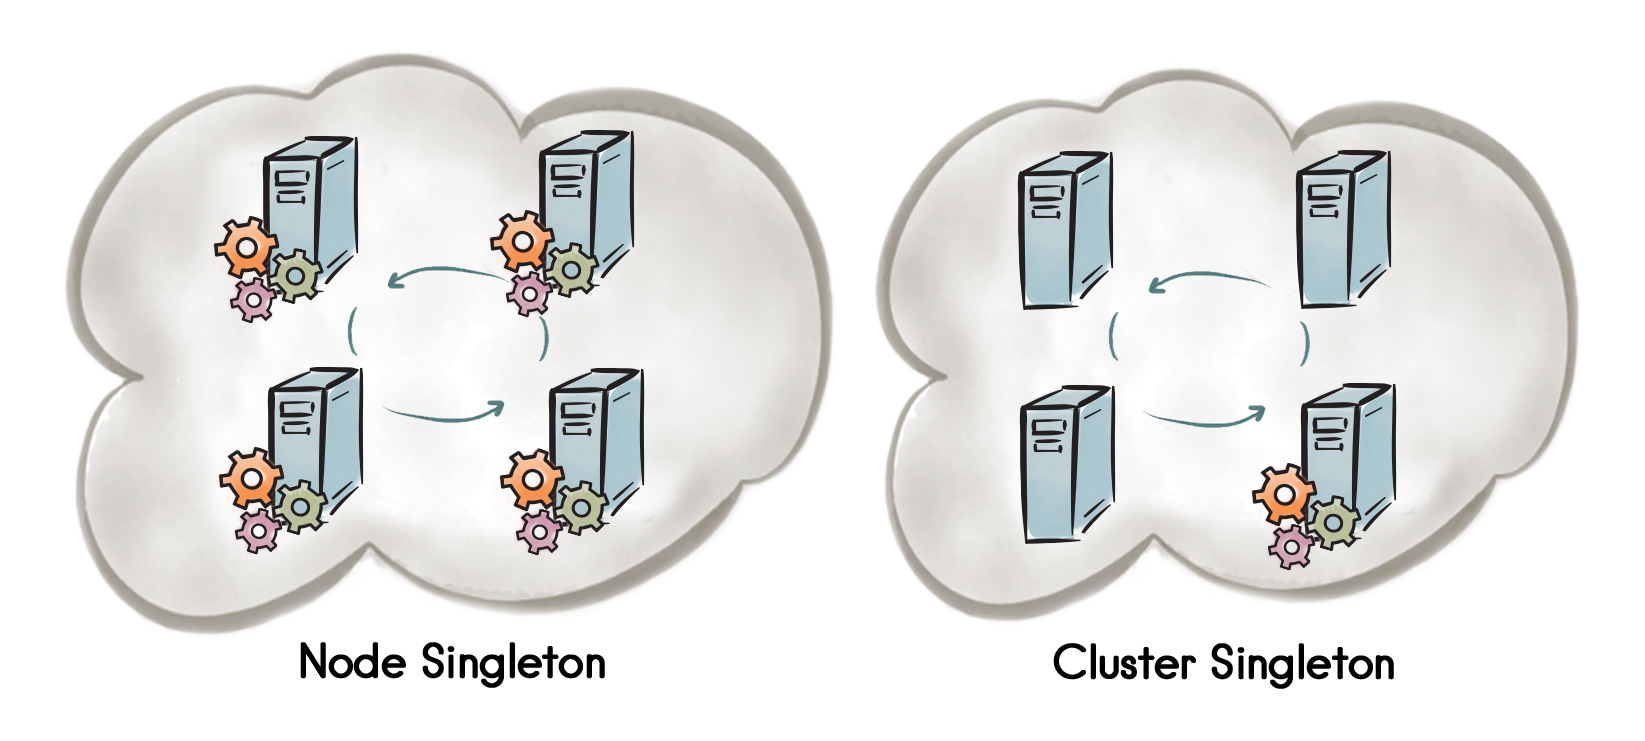 Figure 1. Node Singleton and Cluster Singleton